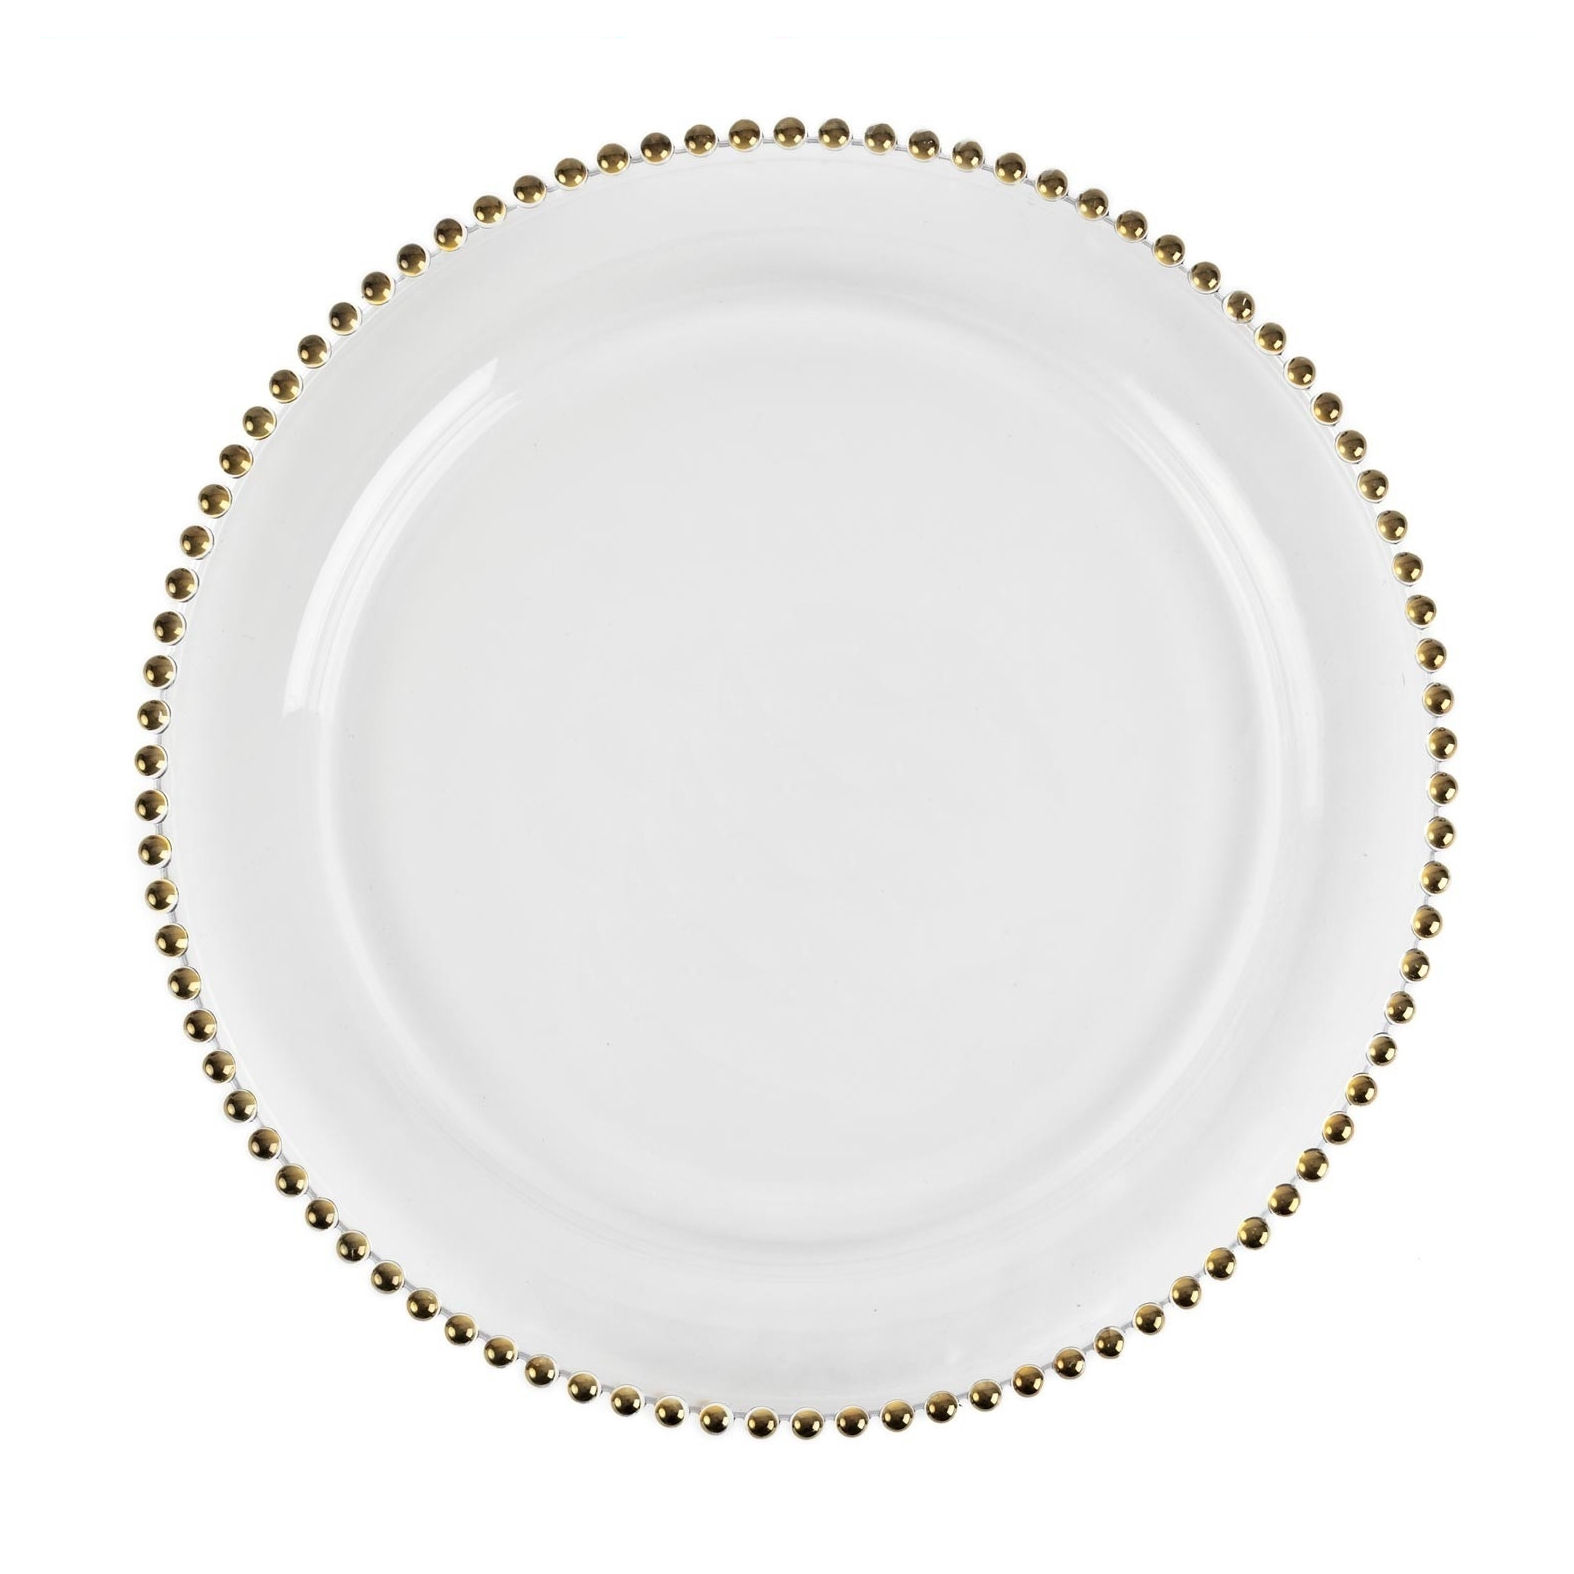 Astonishing Plate Chargers for Pretty Dinnerware Ideas: Royal Blue Charger Plates | Wooden Charger Plates | Plate Chargers